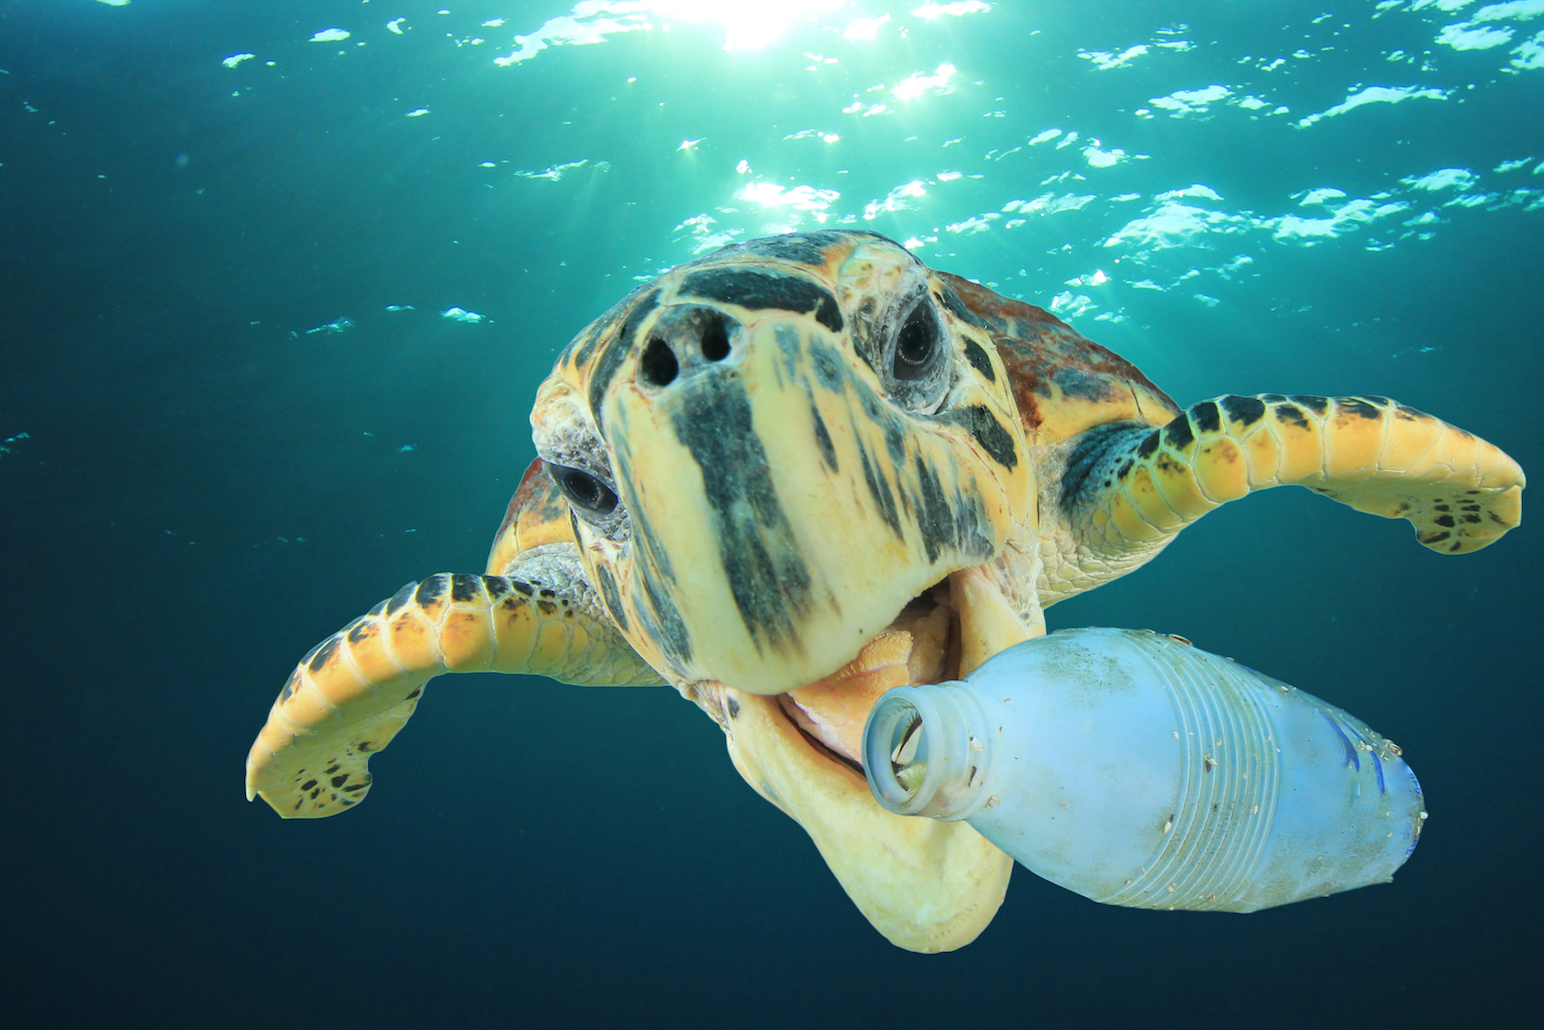 A new report predicts that the amount of plastics in the Earth's oceans will triple in the next ten years, with 150 million tons of plastic pollution littered in the seas by 2025.